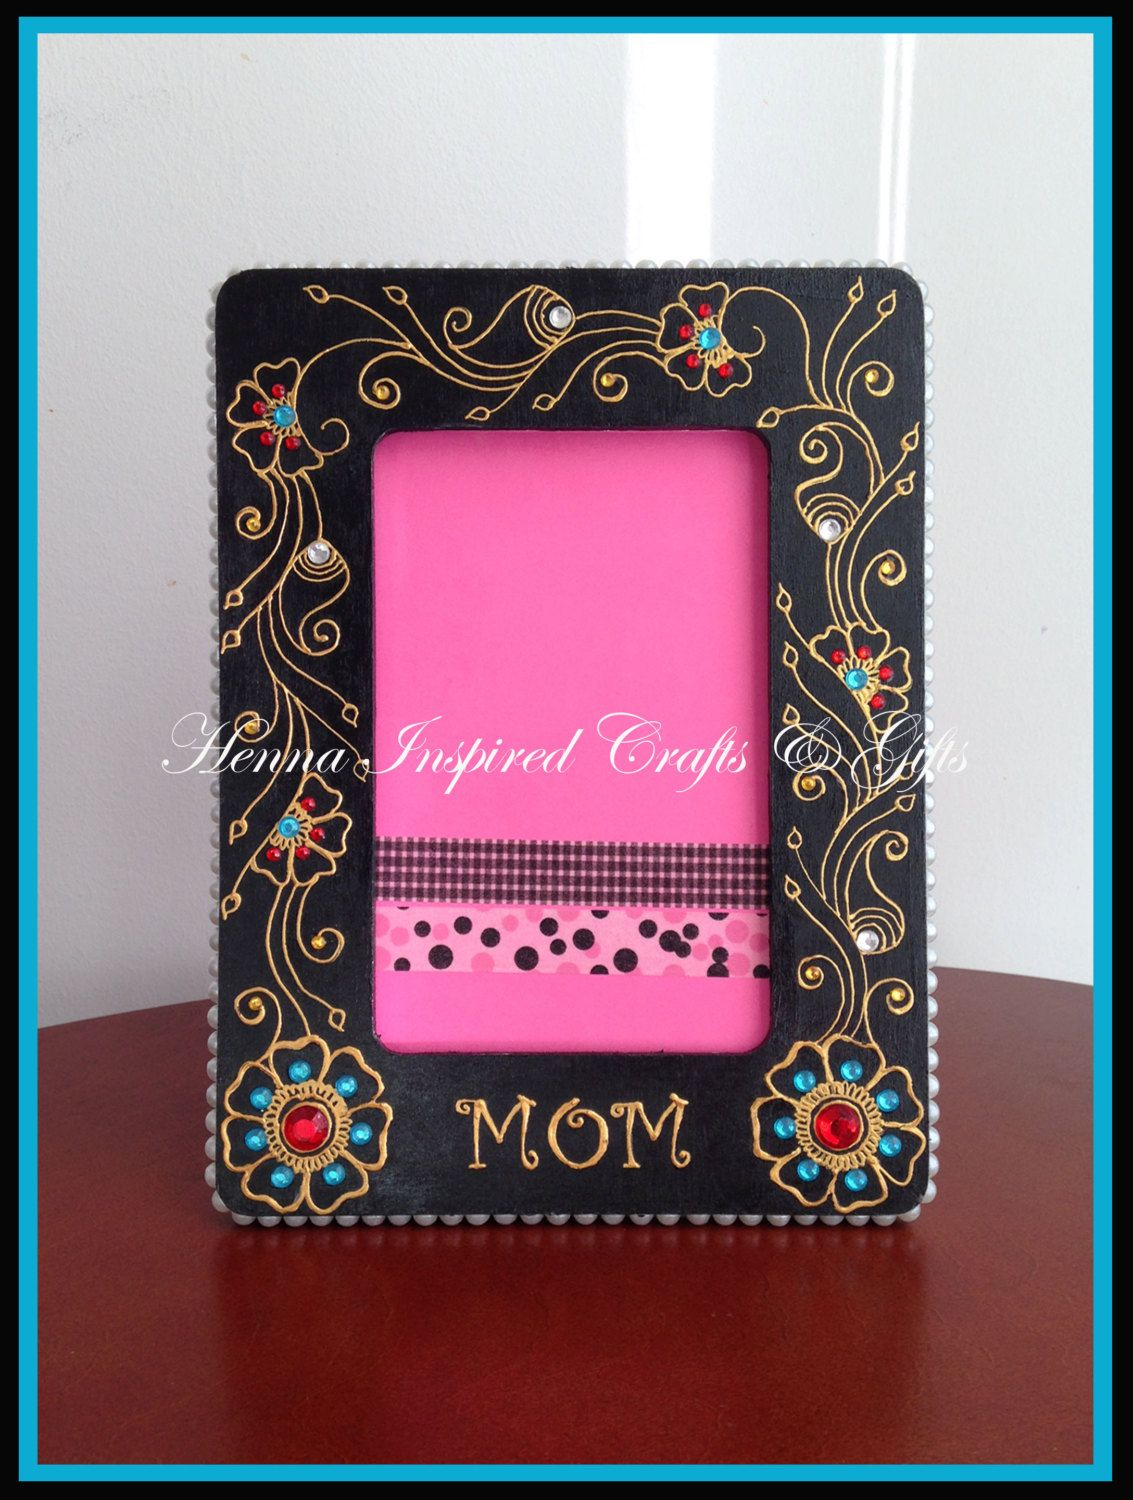 MOM, Gift for Mom, Mother's Day photo picture frame, Hand painted, Henna Inspired , personalized photo frame, Black Frame, Gift by HennaCraftsbyPramila on Etsy https://www.etsy.com/listing/228146085/mom-gift-for-mom-mothers-day-photo